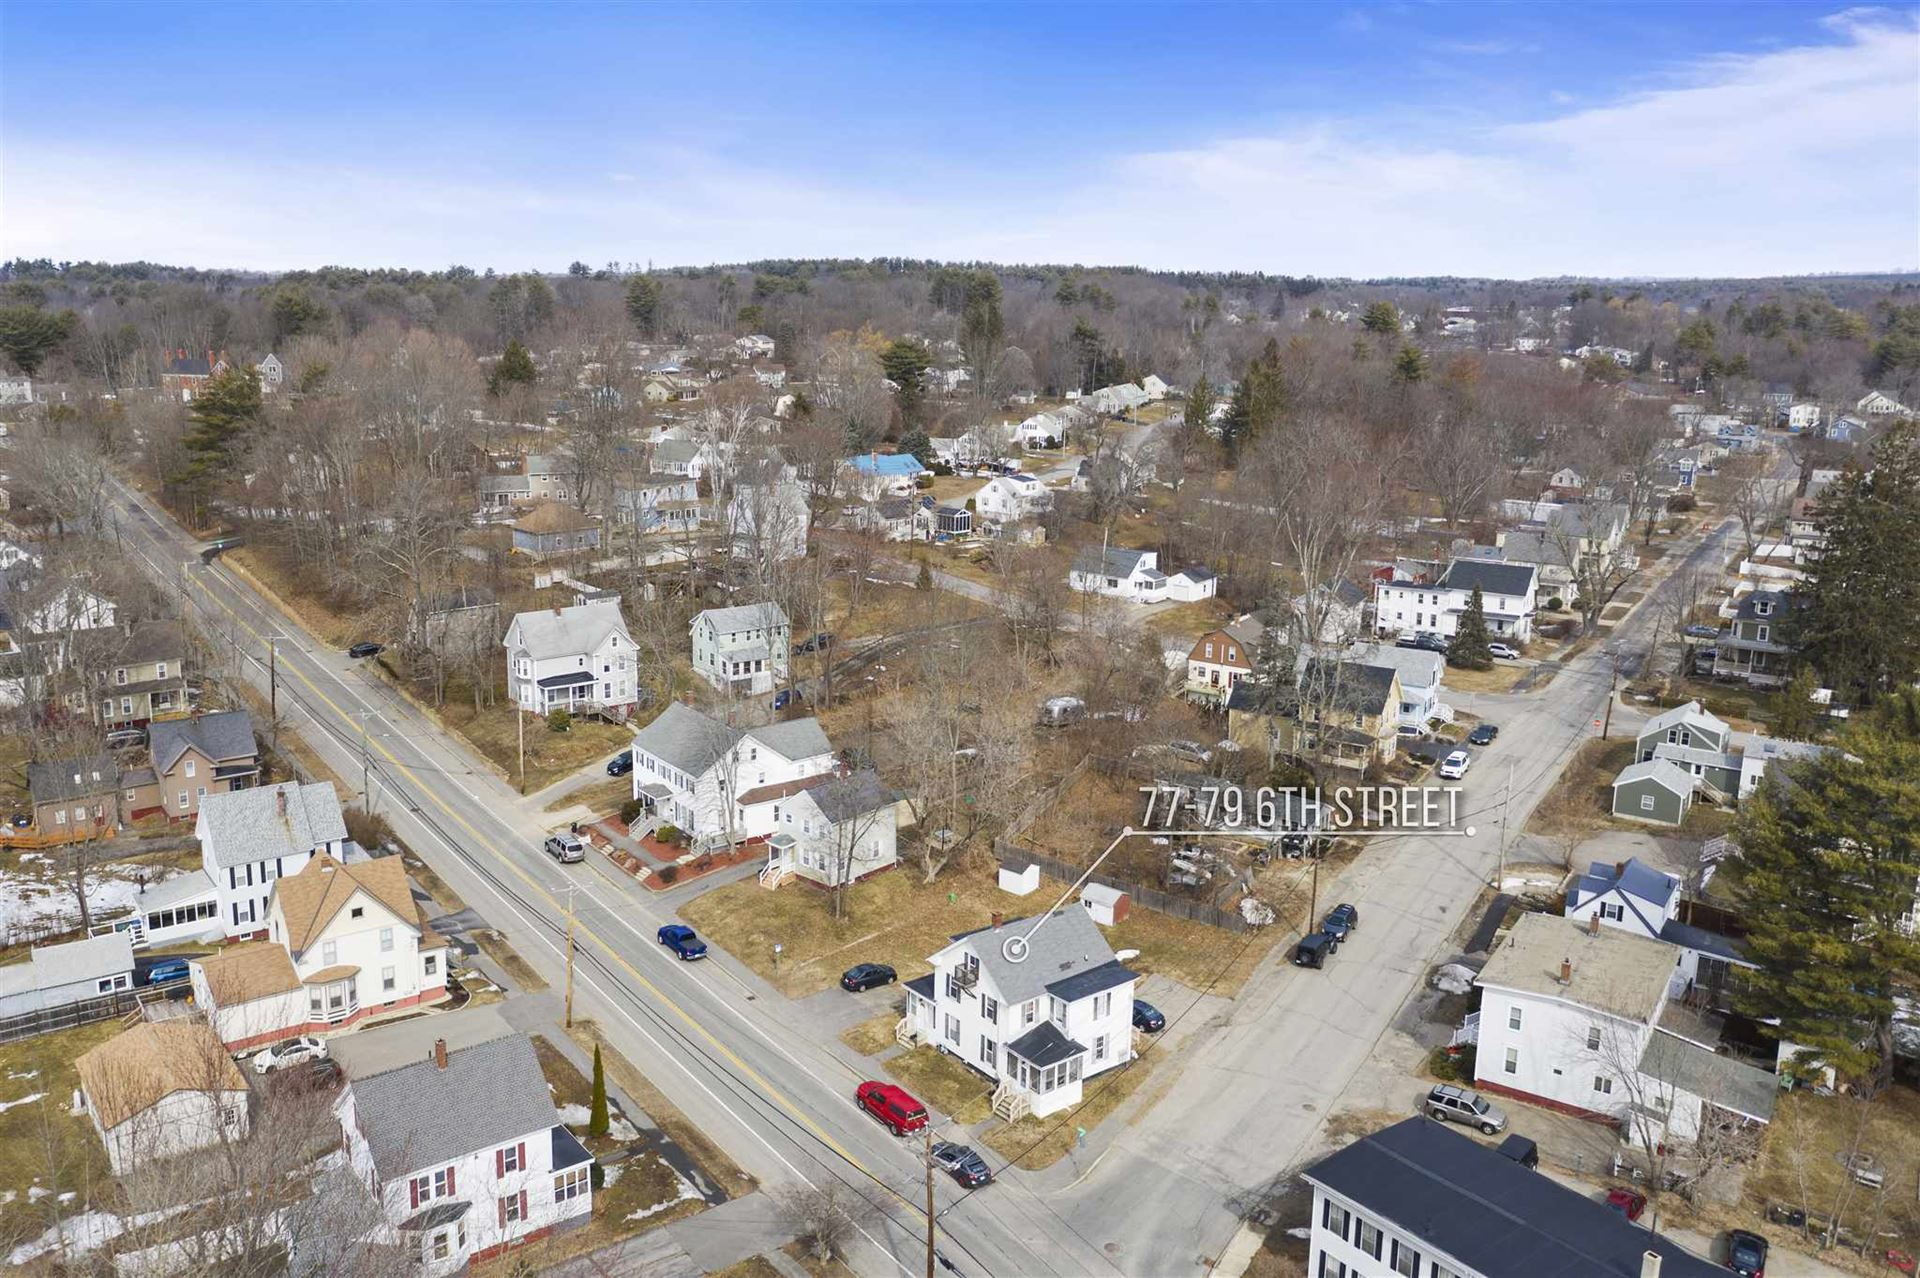 77-79 Sixth Street, Dover, NH 03820 - MLS#: 4851047